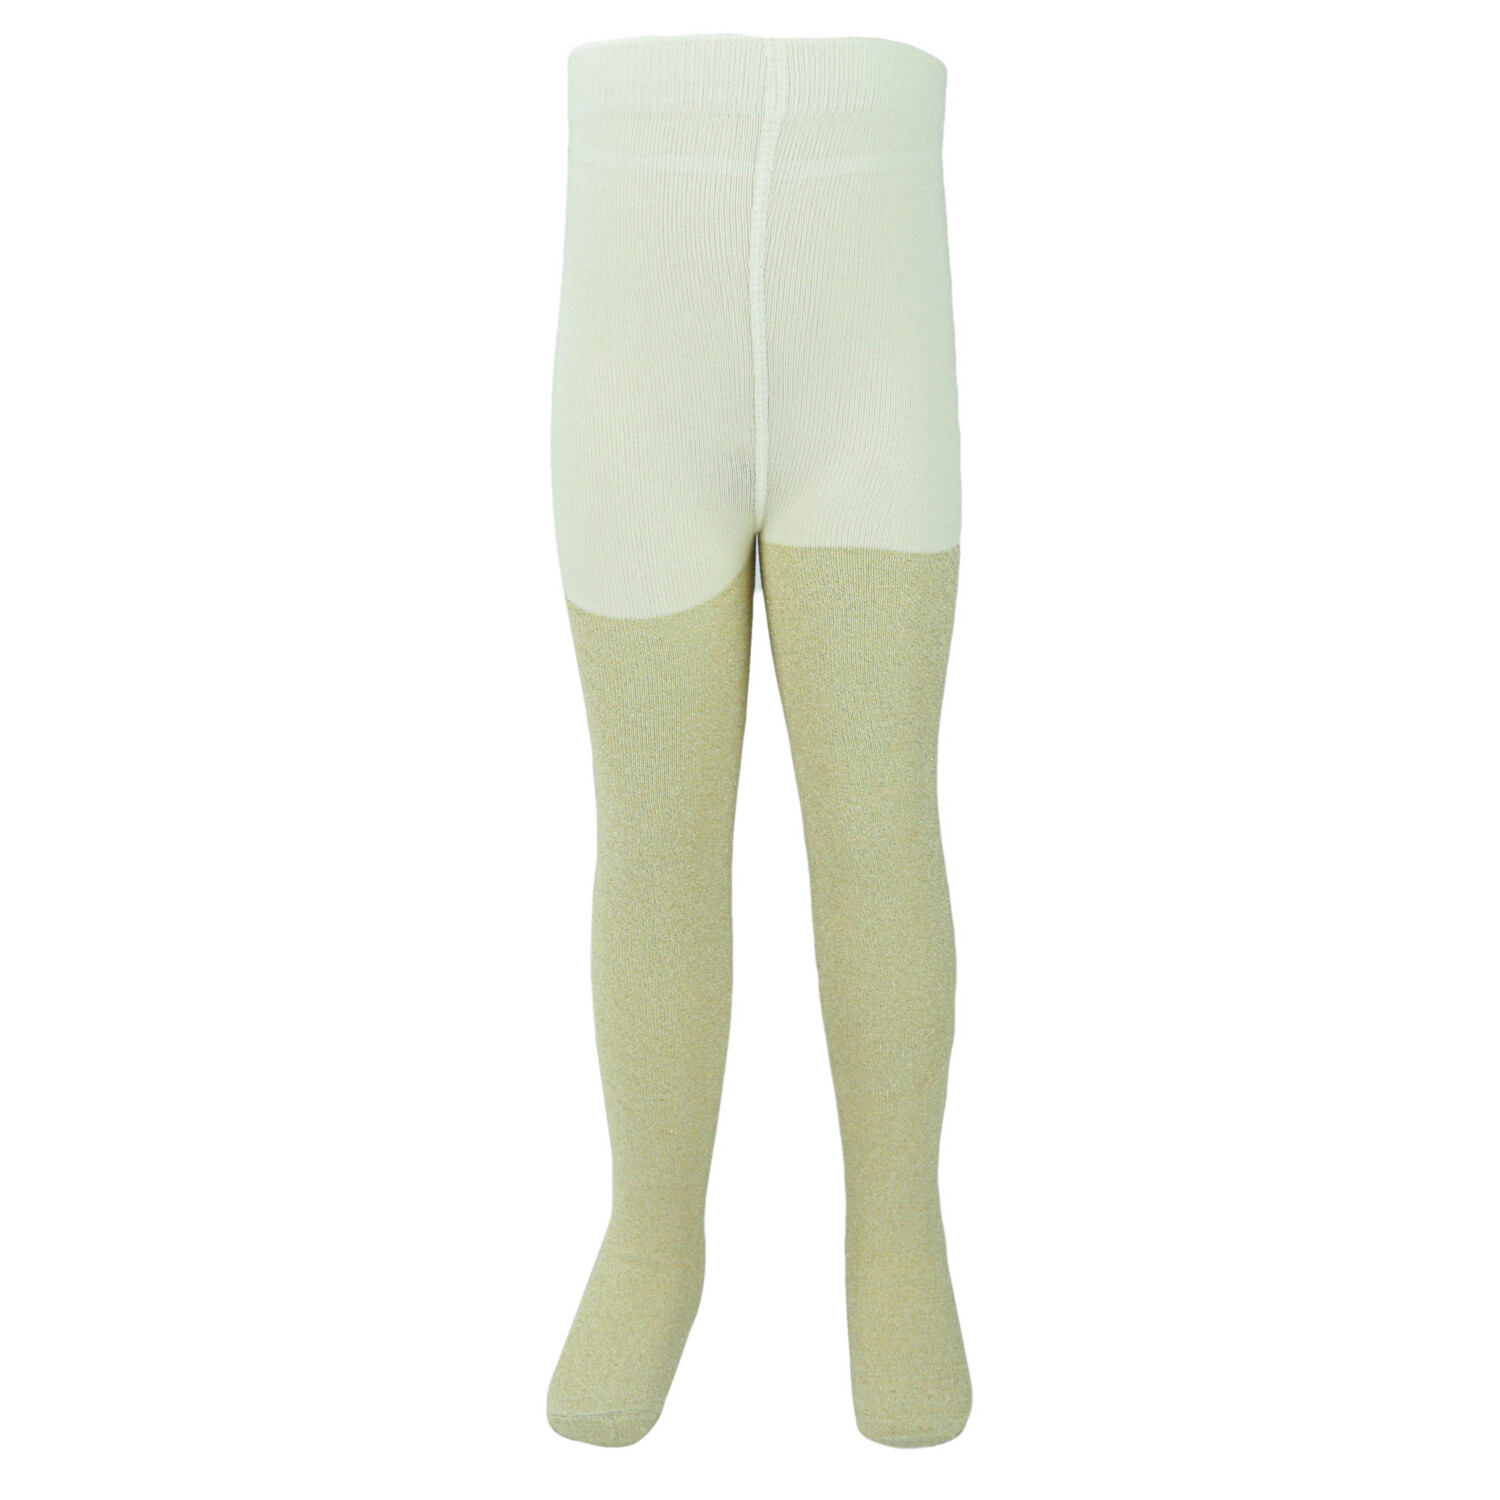 Janie And Jack Girl's Gold Tight - 2T-3